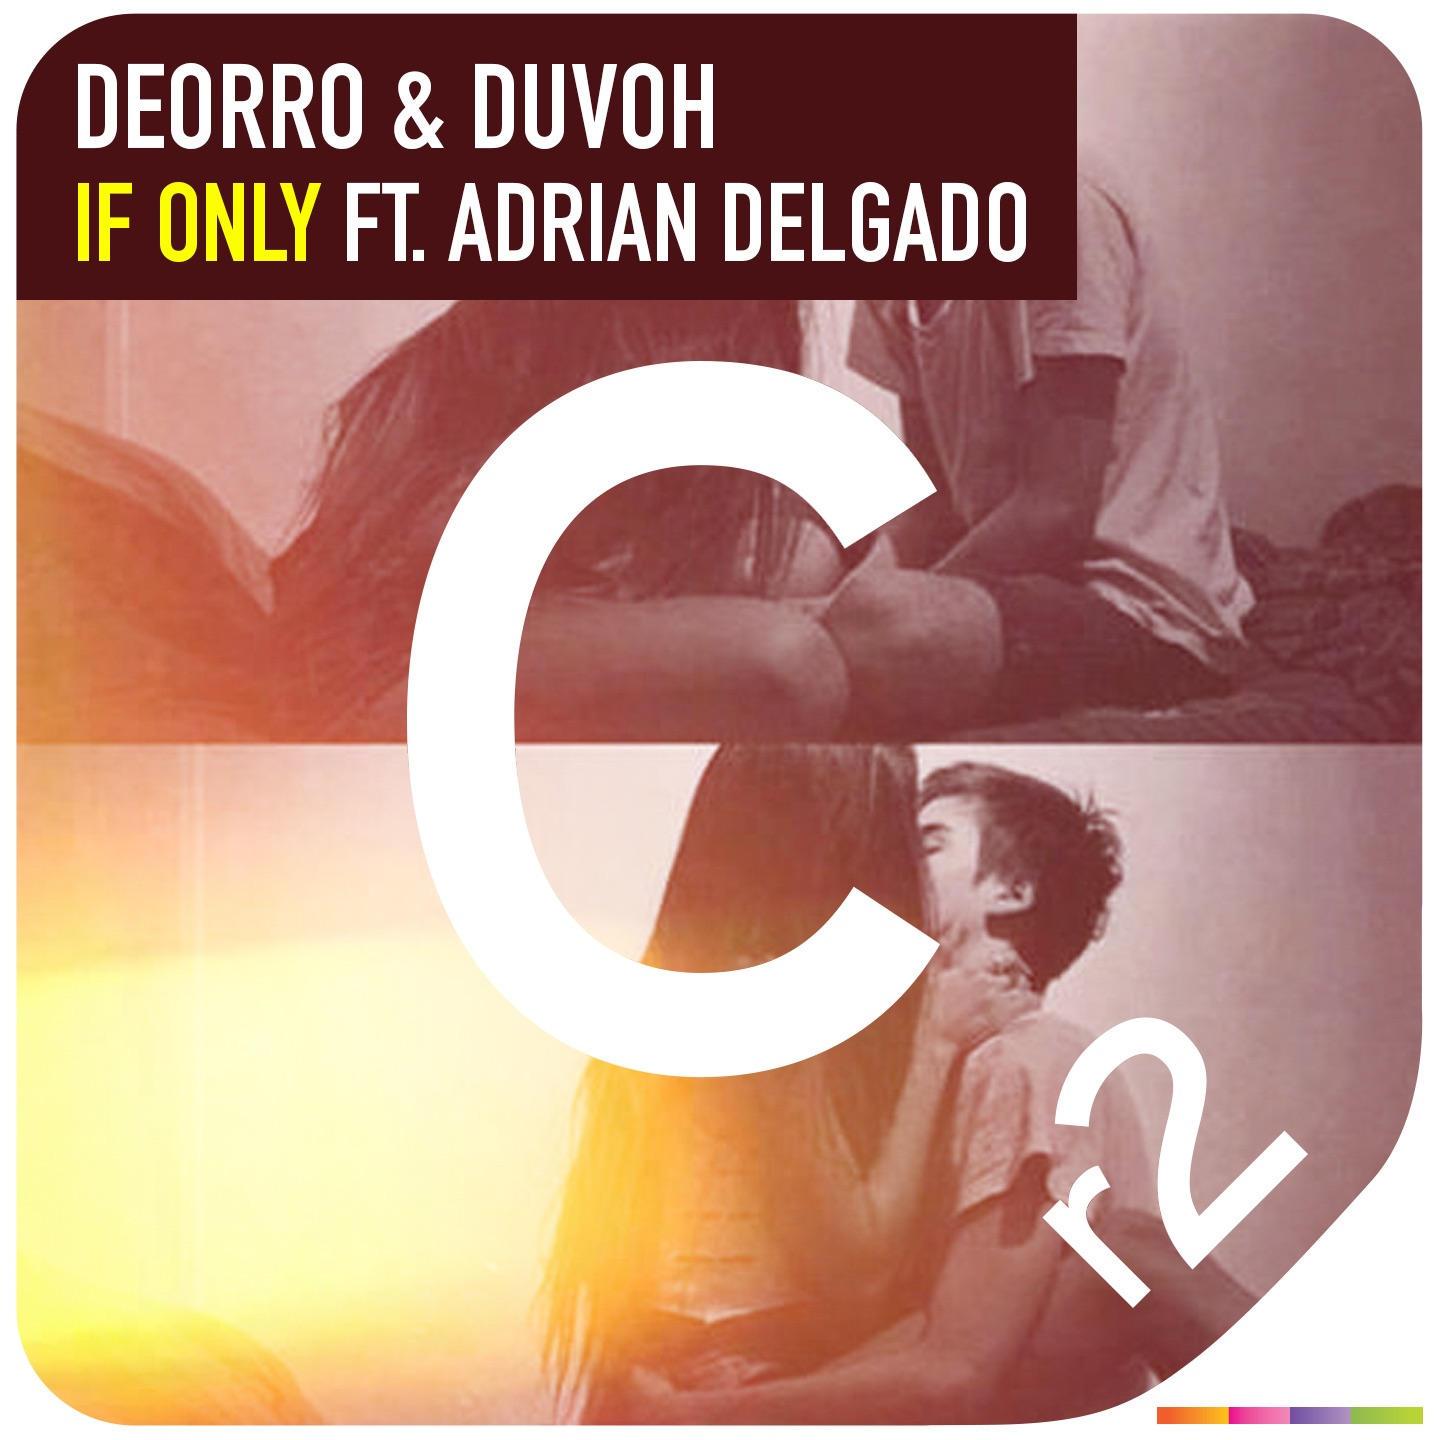 If Only (feat. Adrian Delgado) - Single